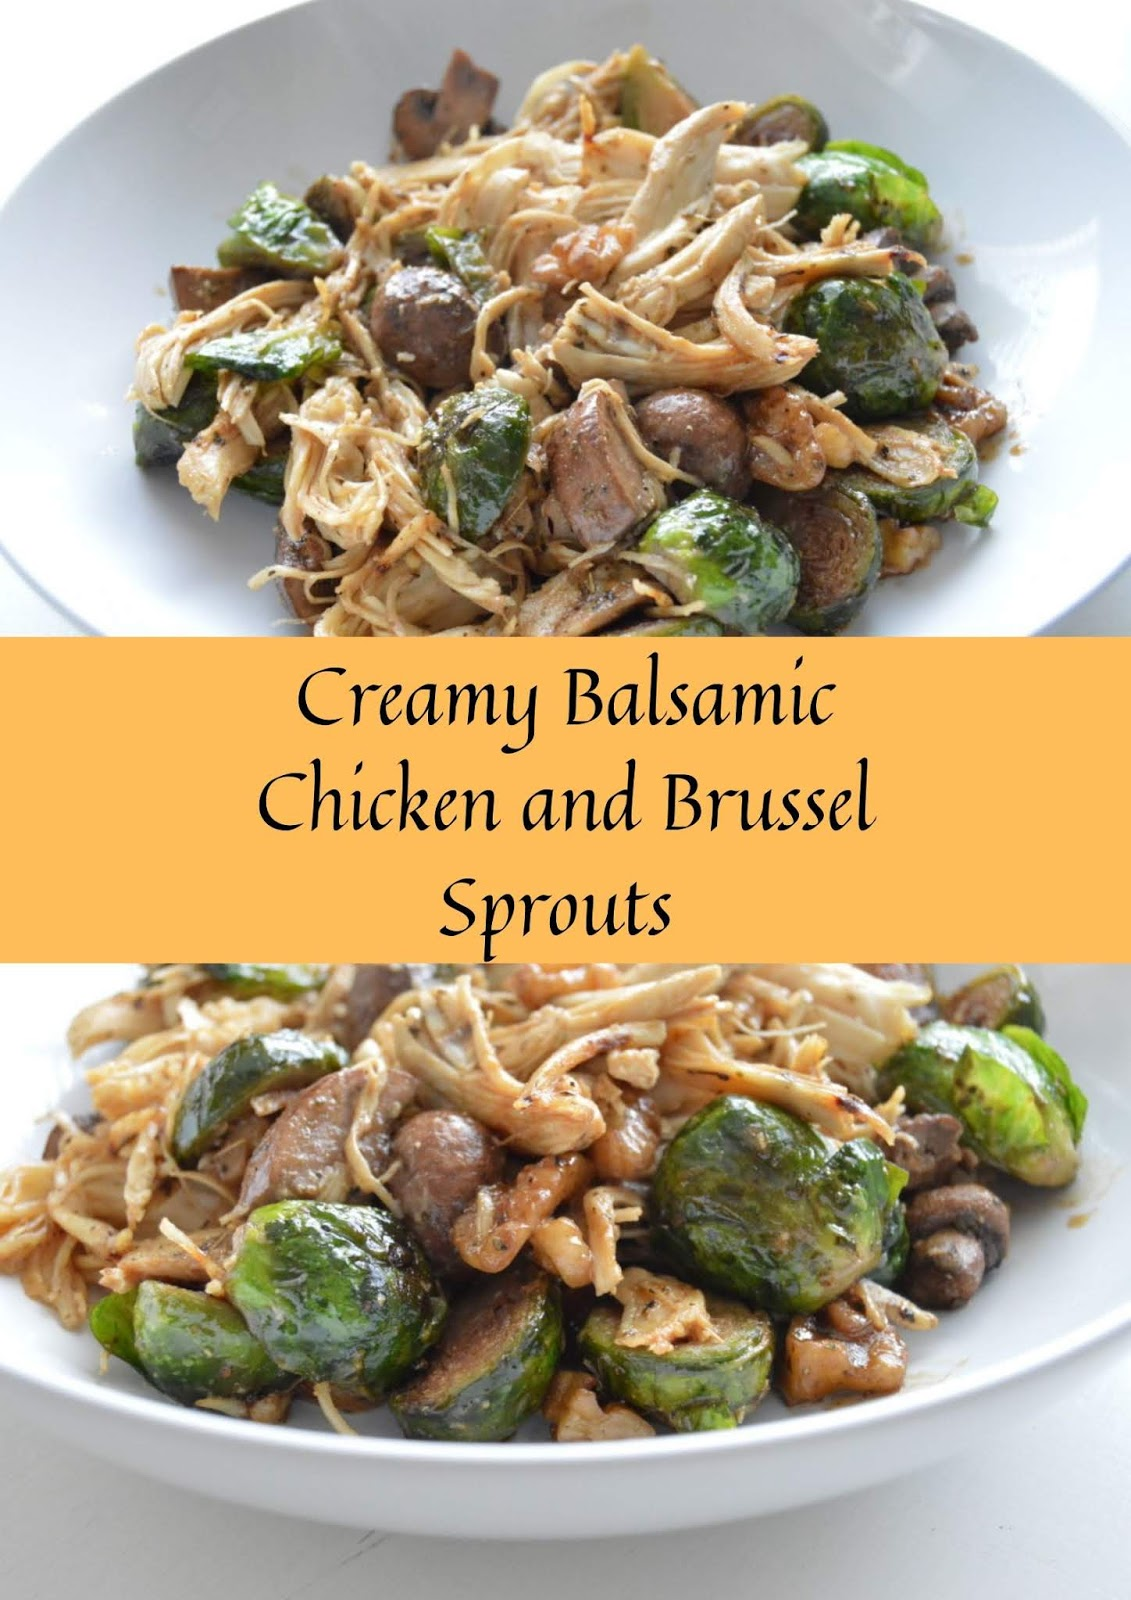 Creamy Balsamic Chicken and Brussel Sprouts  #chicken #dinner